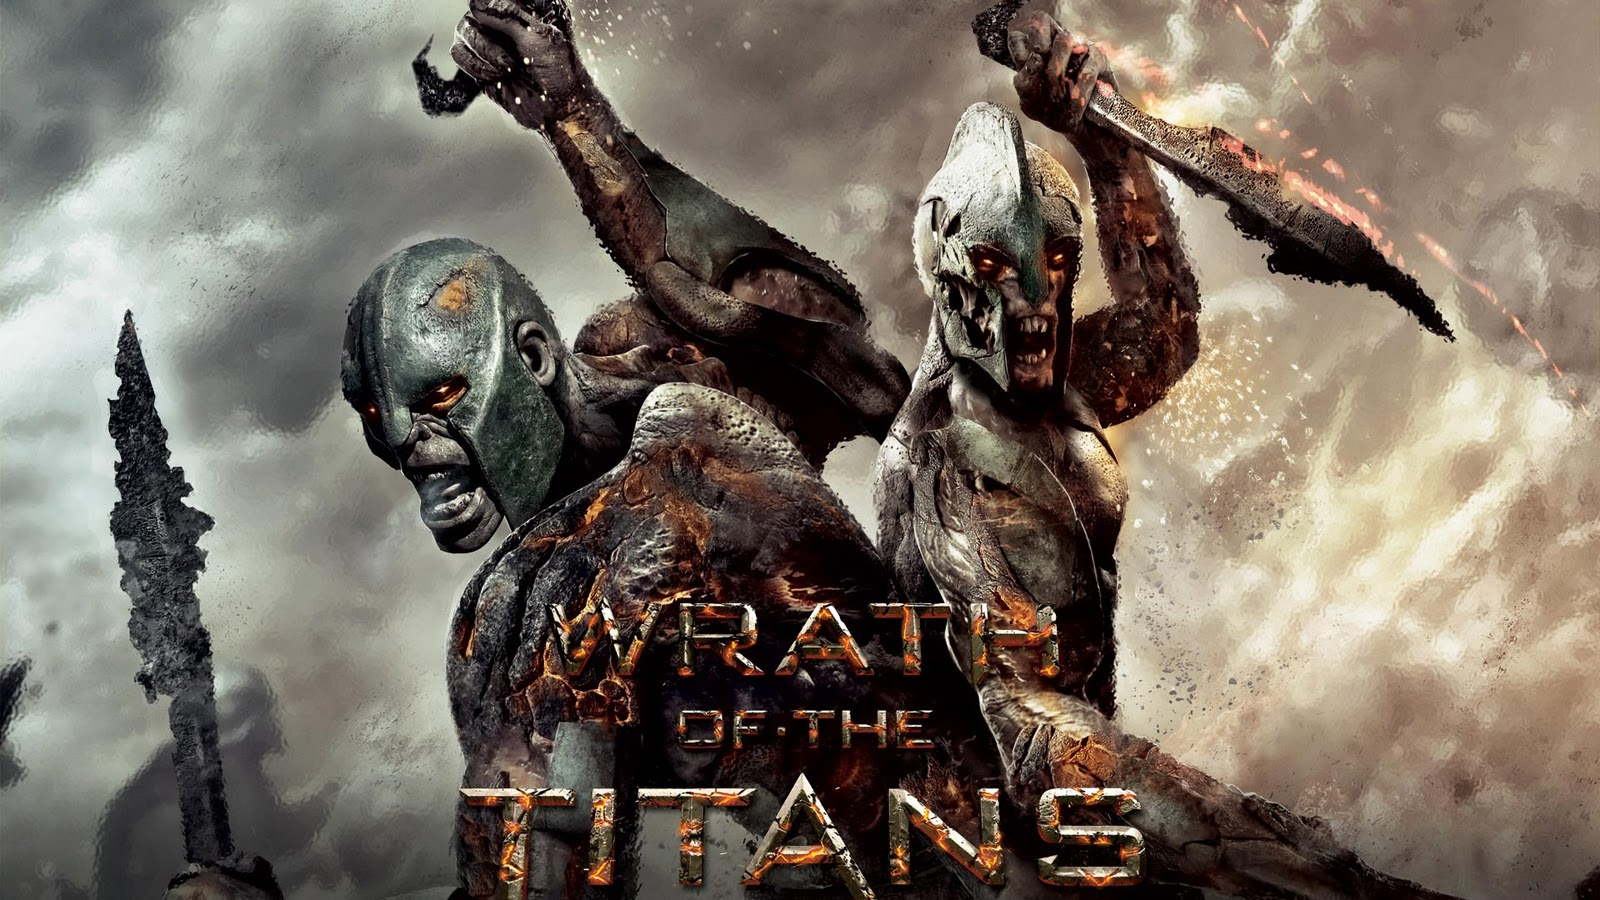 http://1.bp.blogspot.com/-sIBu6jbzGWQ/Tye7NkT22tI/AAAAAAAAAtY/bkgWdI65KHE/s1600/Wrath-of-The-Titans-Movie-Wallpaper-1080p-HD.jpg